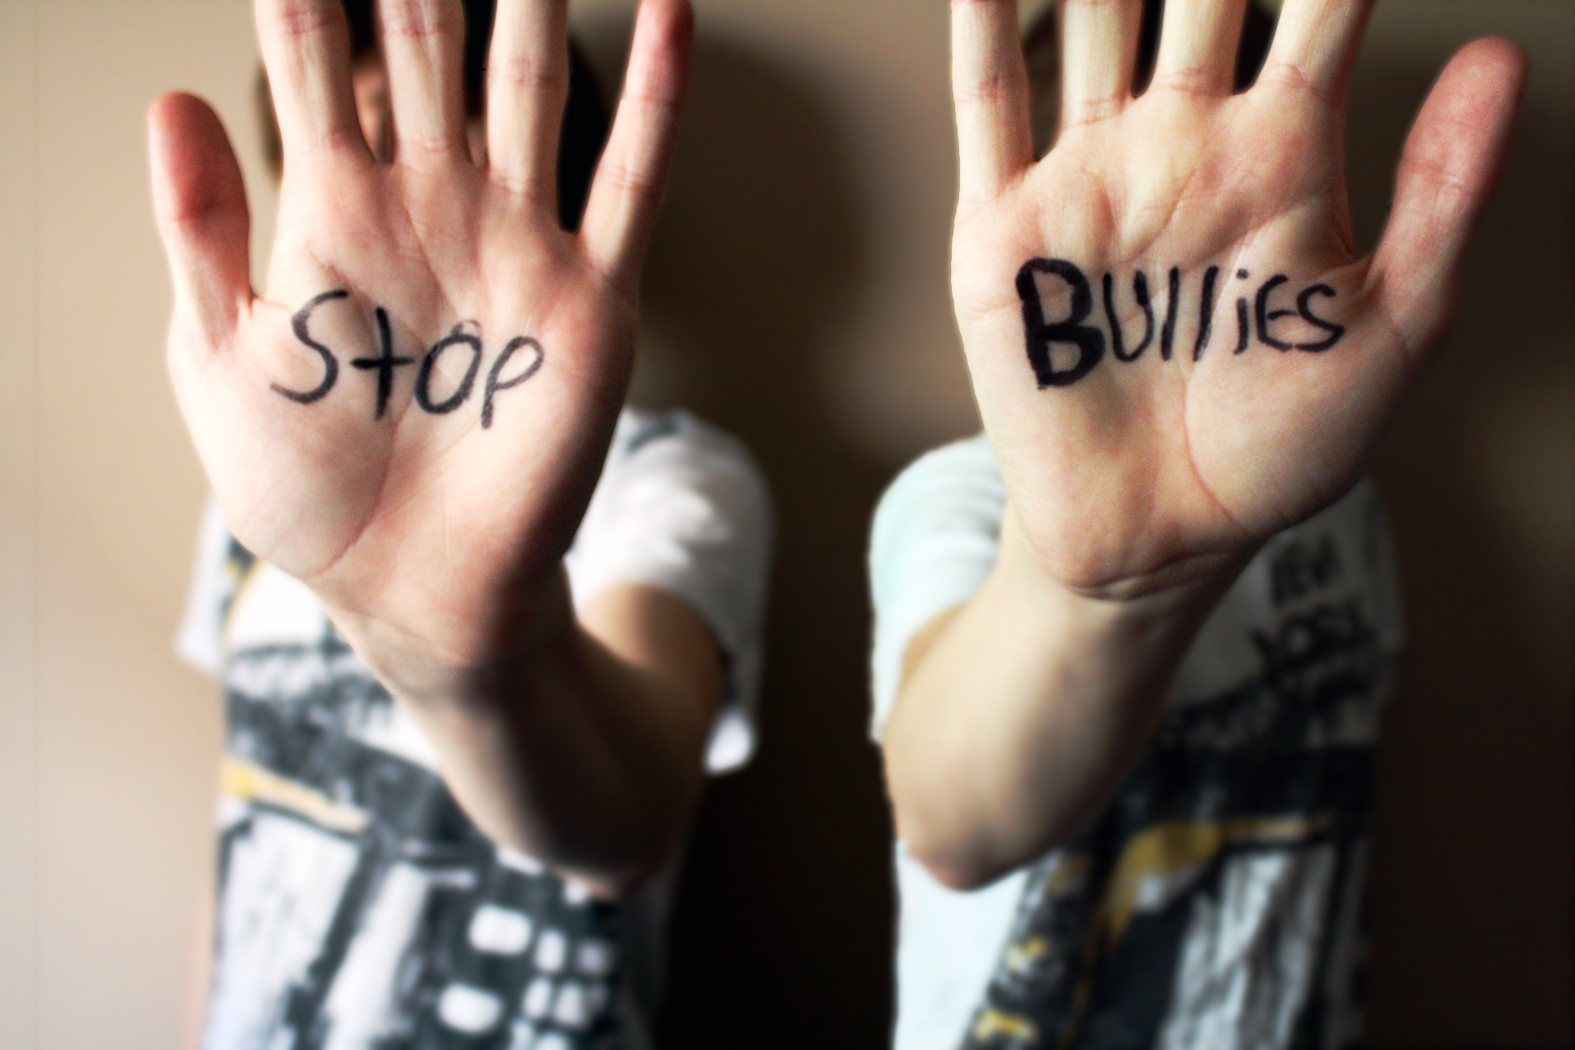 essay about negative effects of bullying Therapy literature effects of bullying is a bullying is too limited and effect global warming child study center real life statistics about homophobia, some cause and effects.